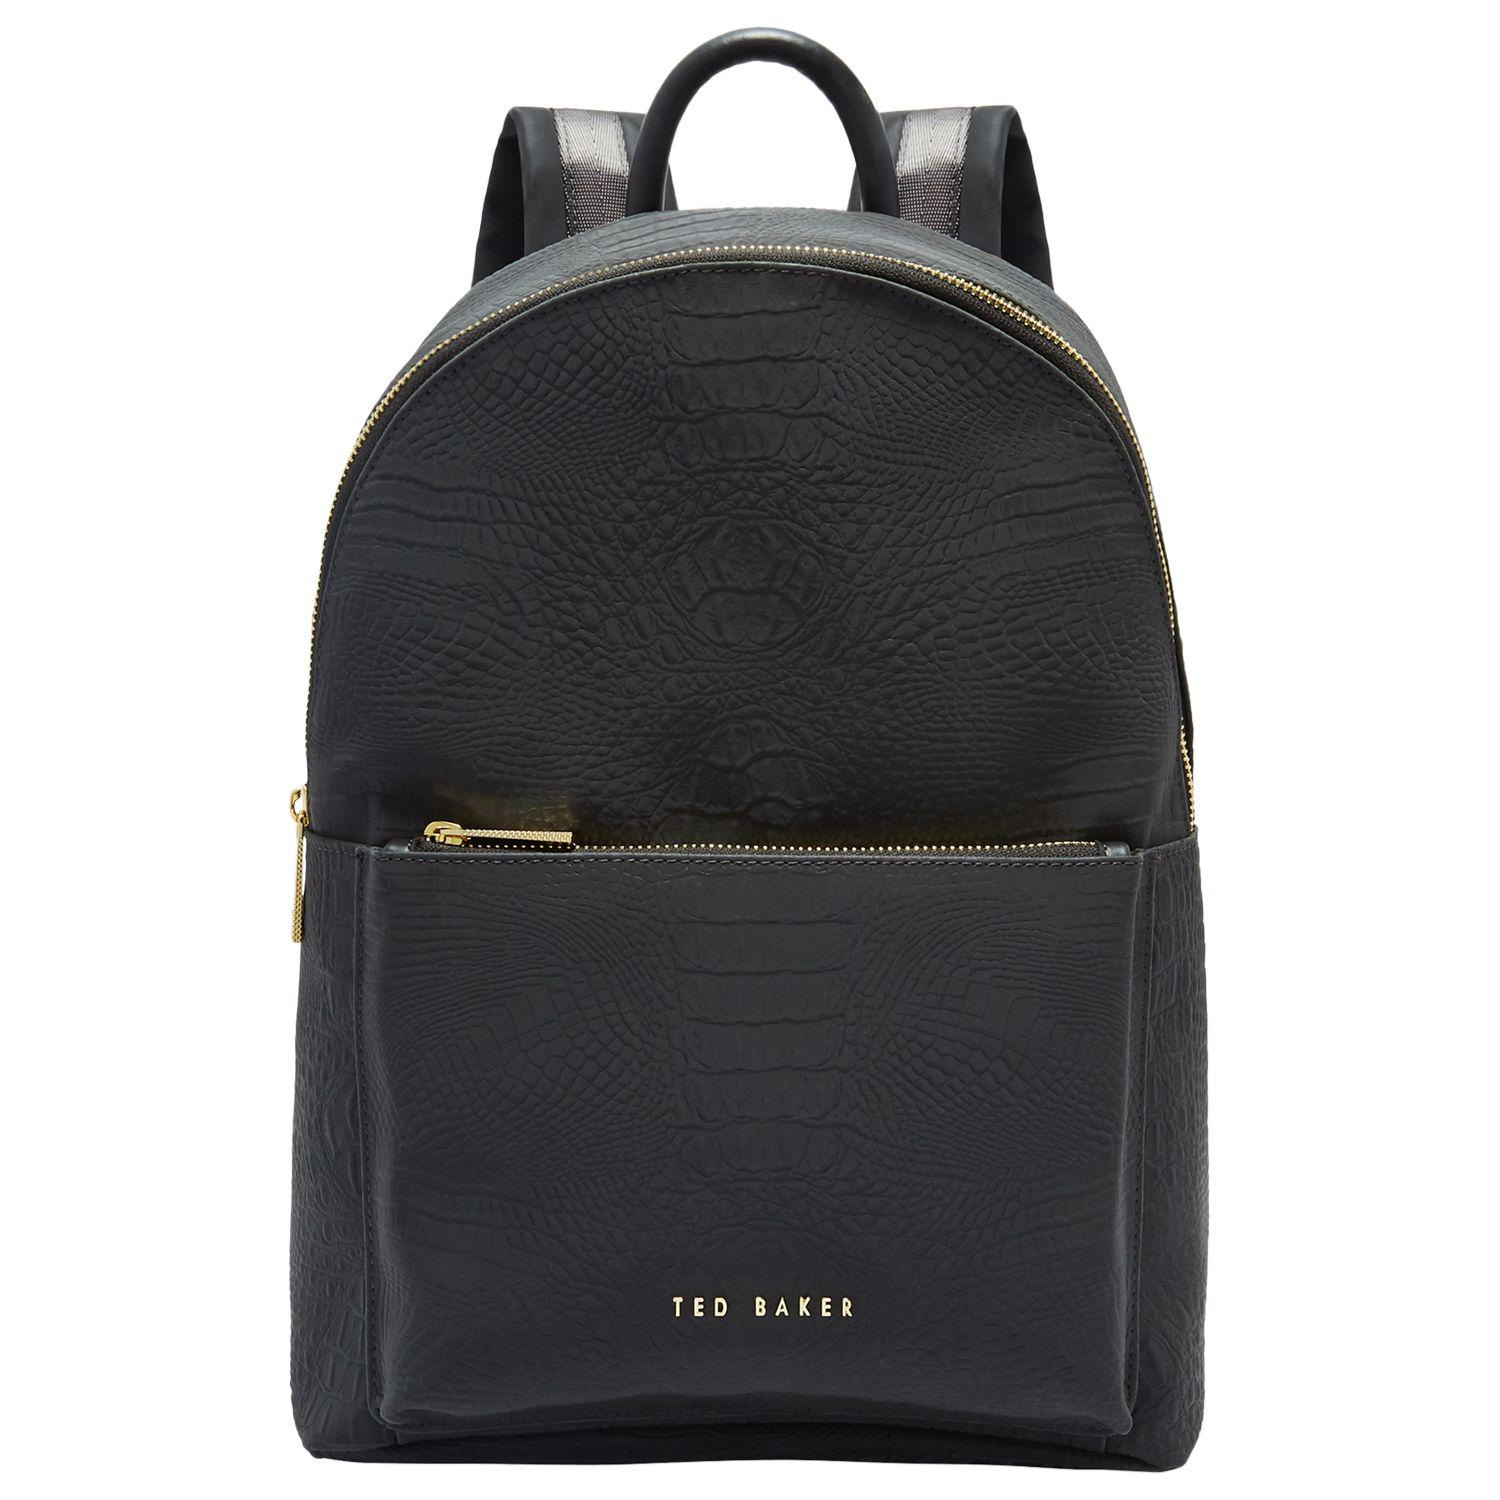 4d1b89d906937 Ted Baker Creaala Leather Croc Effect Backpack in Black - Lyst